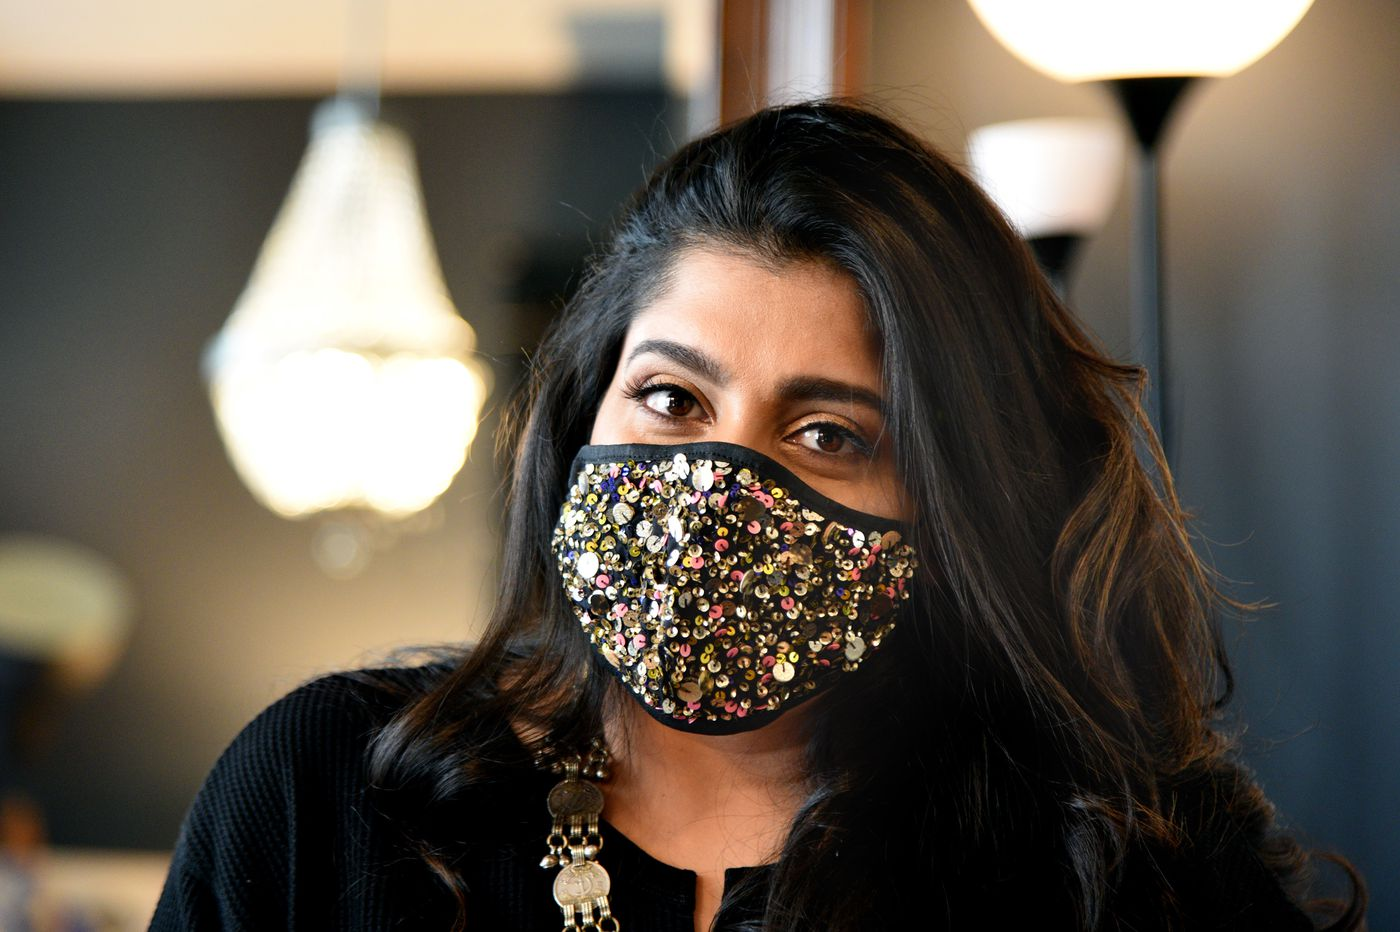 From India to Philly, and from $400 purses to $29 Eagles face masks, this designer's journey is as dynamic as her work | We The People